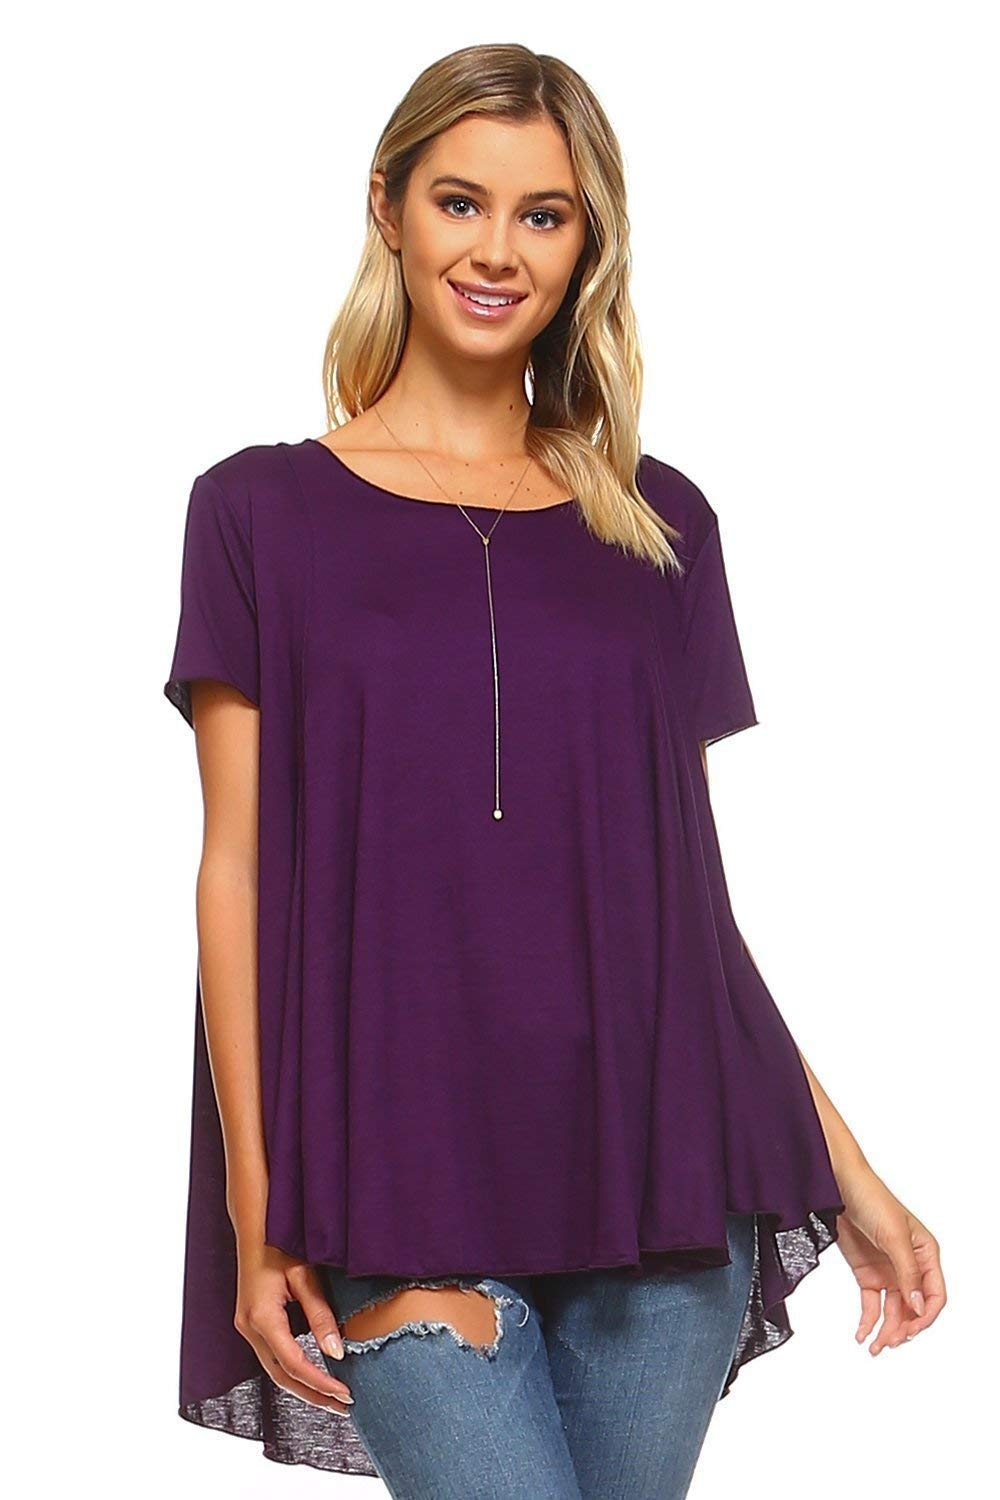 fd94a063f05 Top9  Simplicitie Women s Plus Size Short Sleeve Loose Fit Flare Flowy T  Shirt Tunic Top - Purple